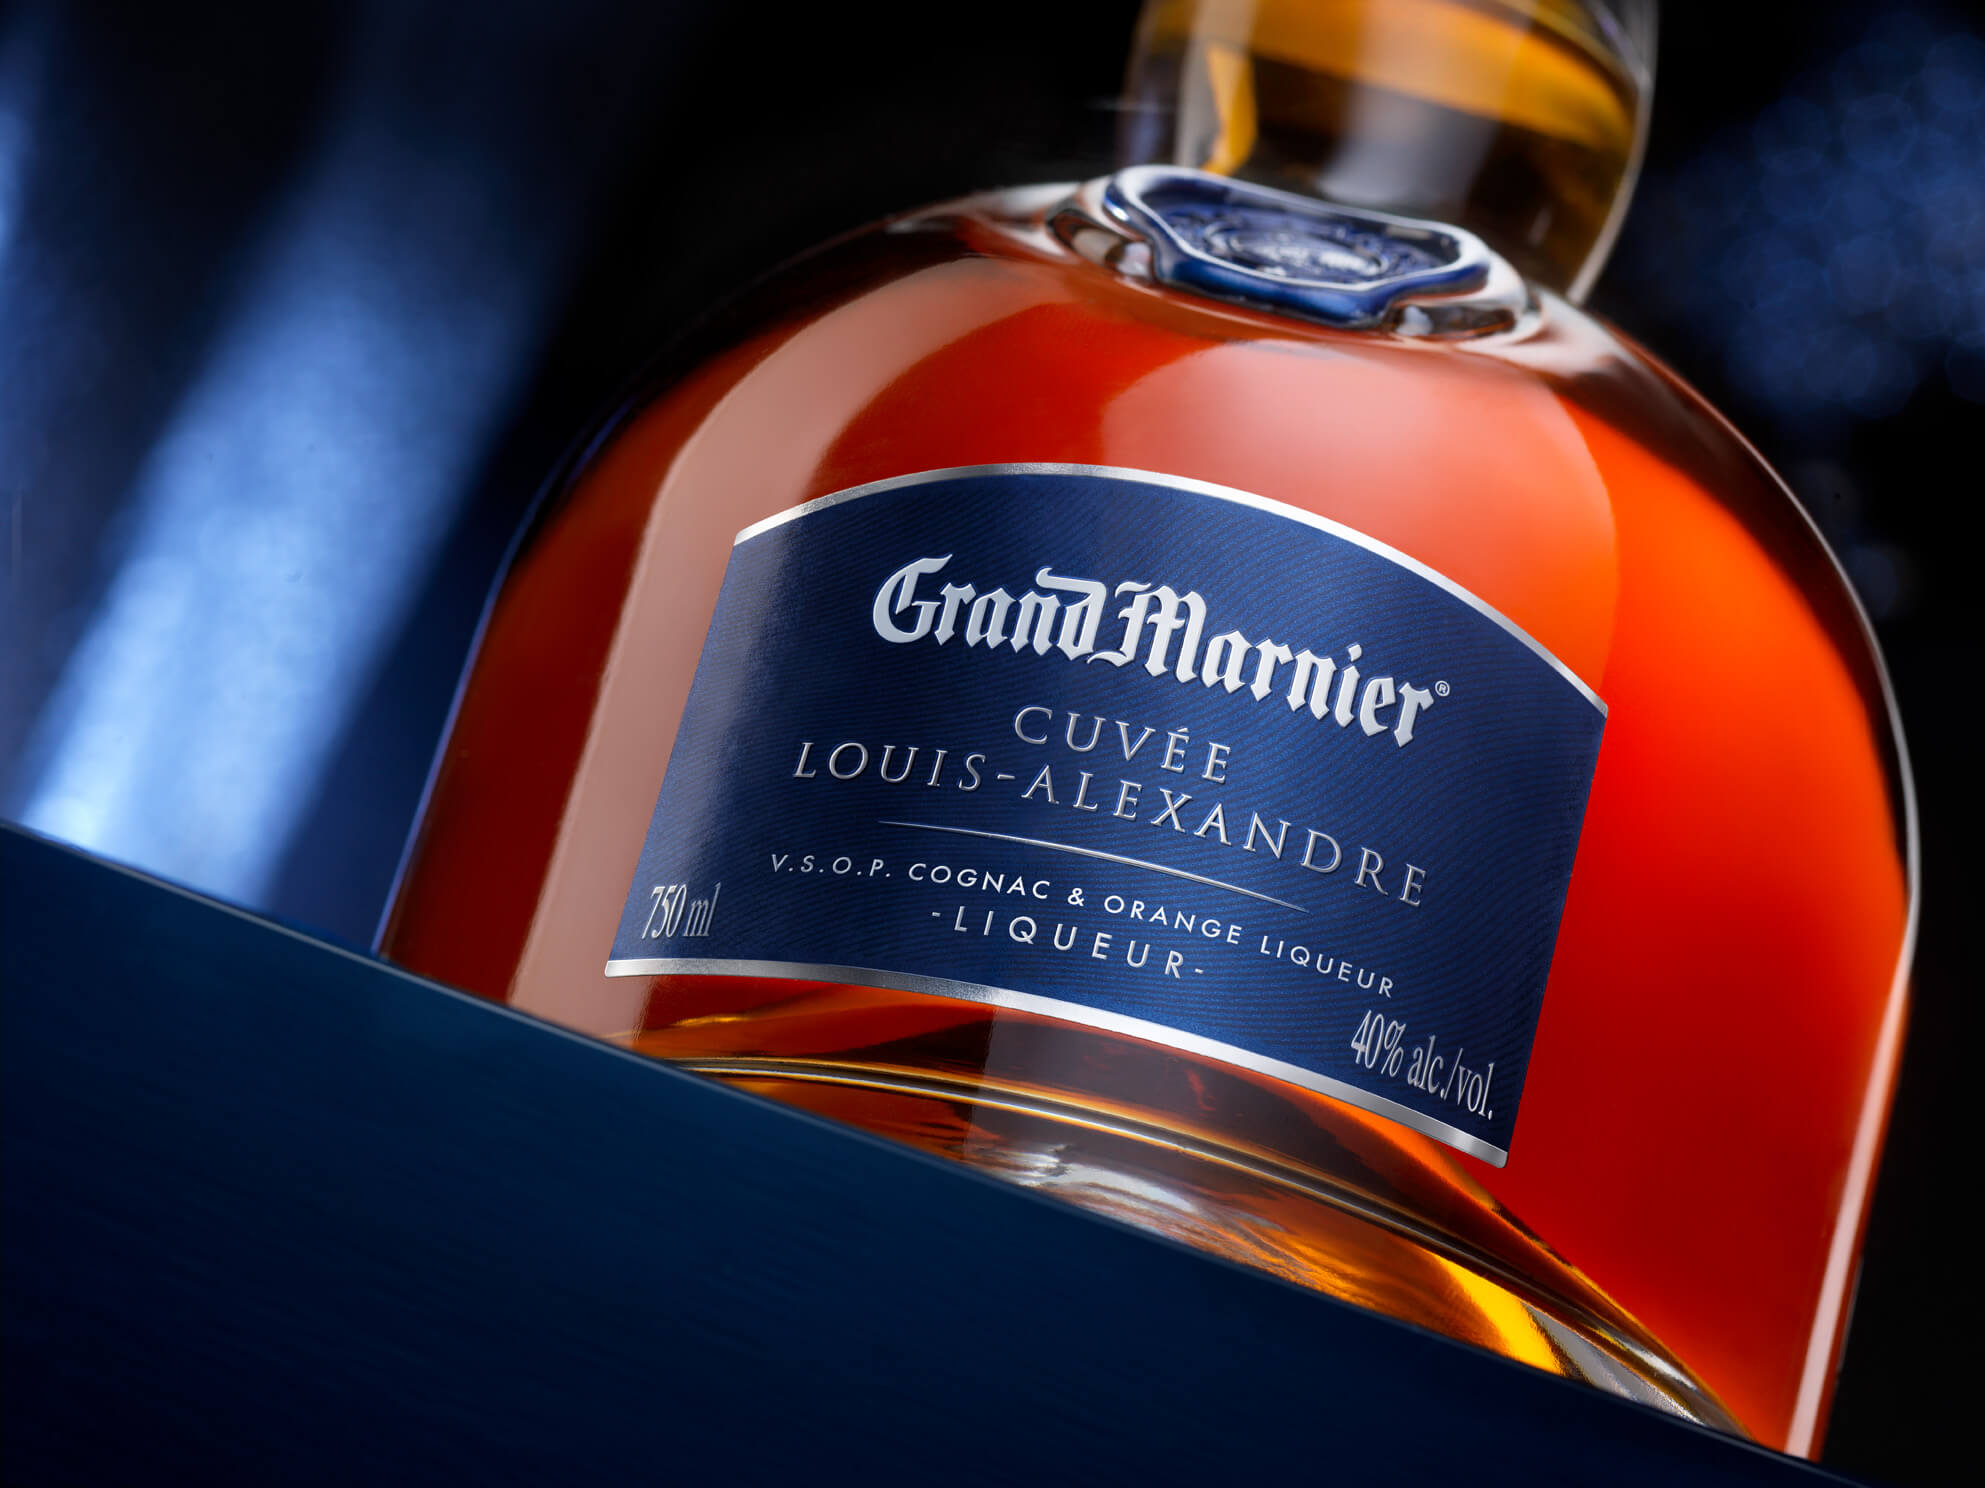 Two bottles of Grand Marnier Cuvée Louis-Alexandre